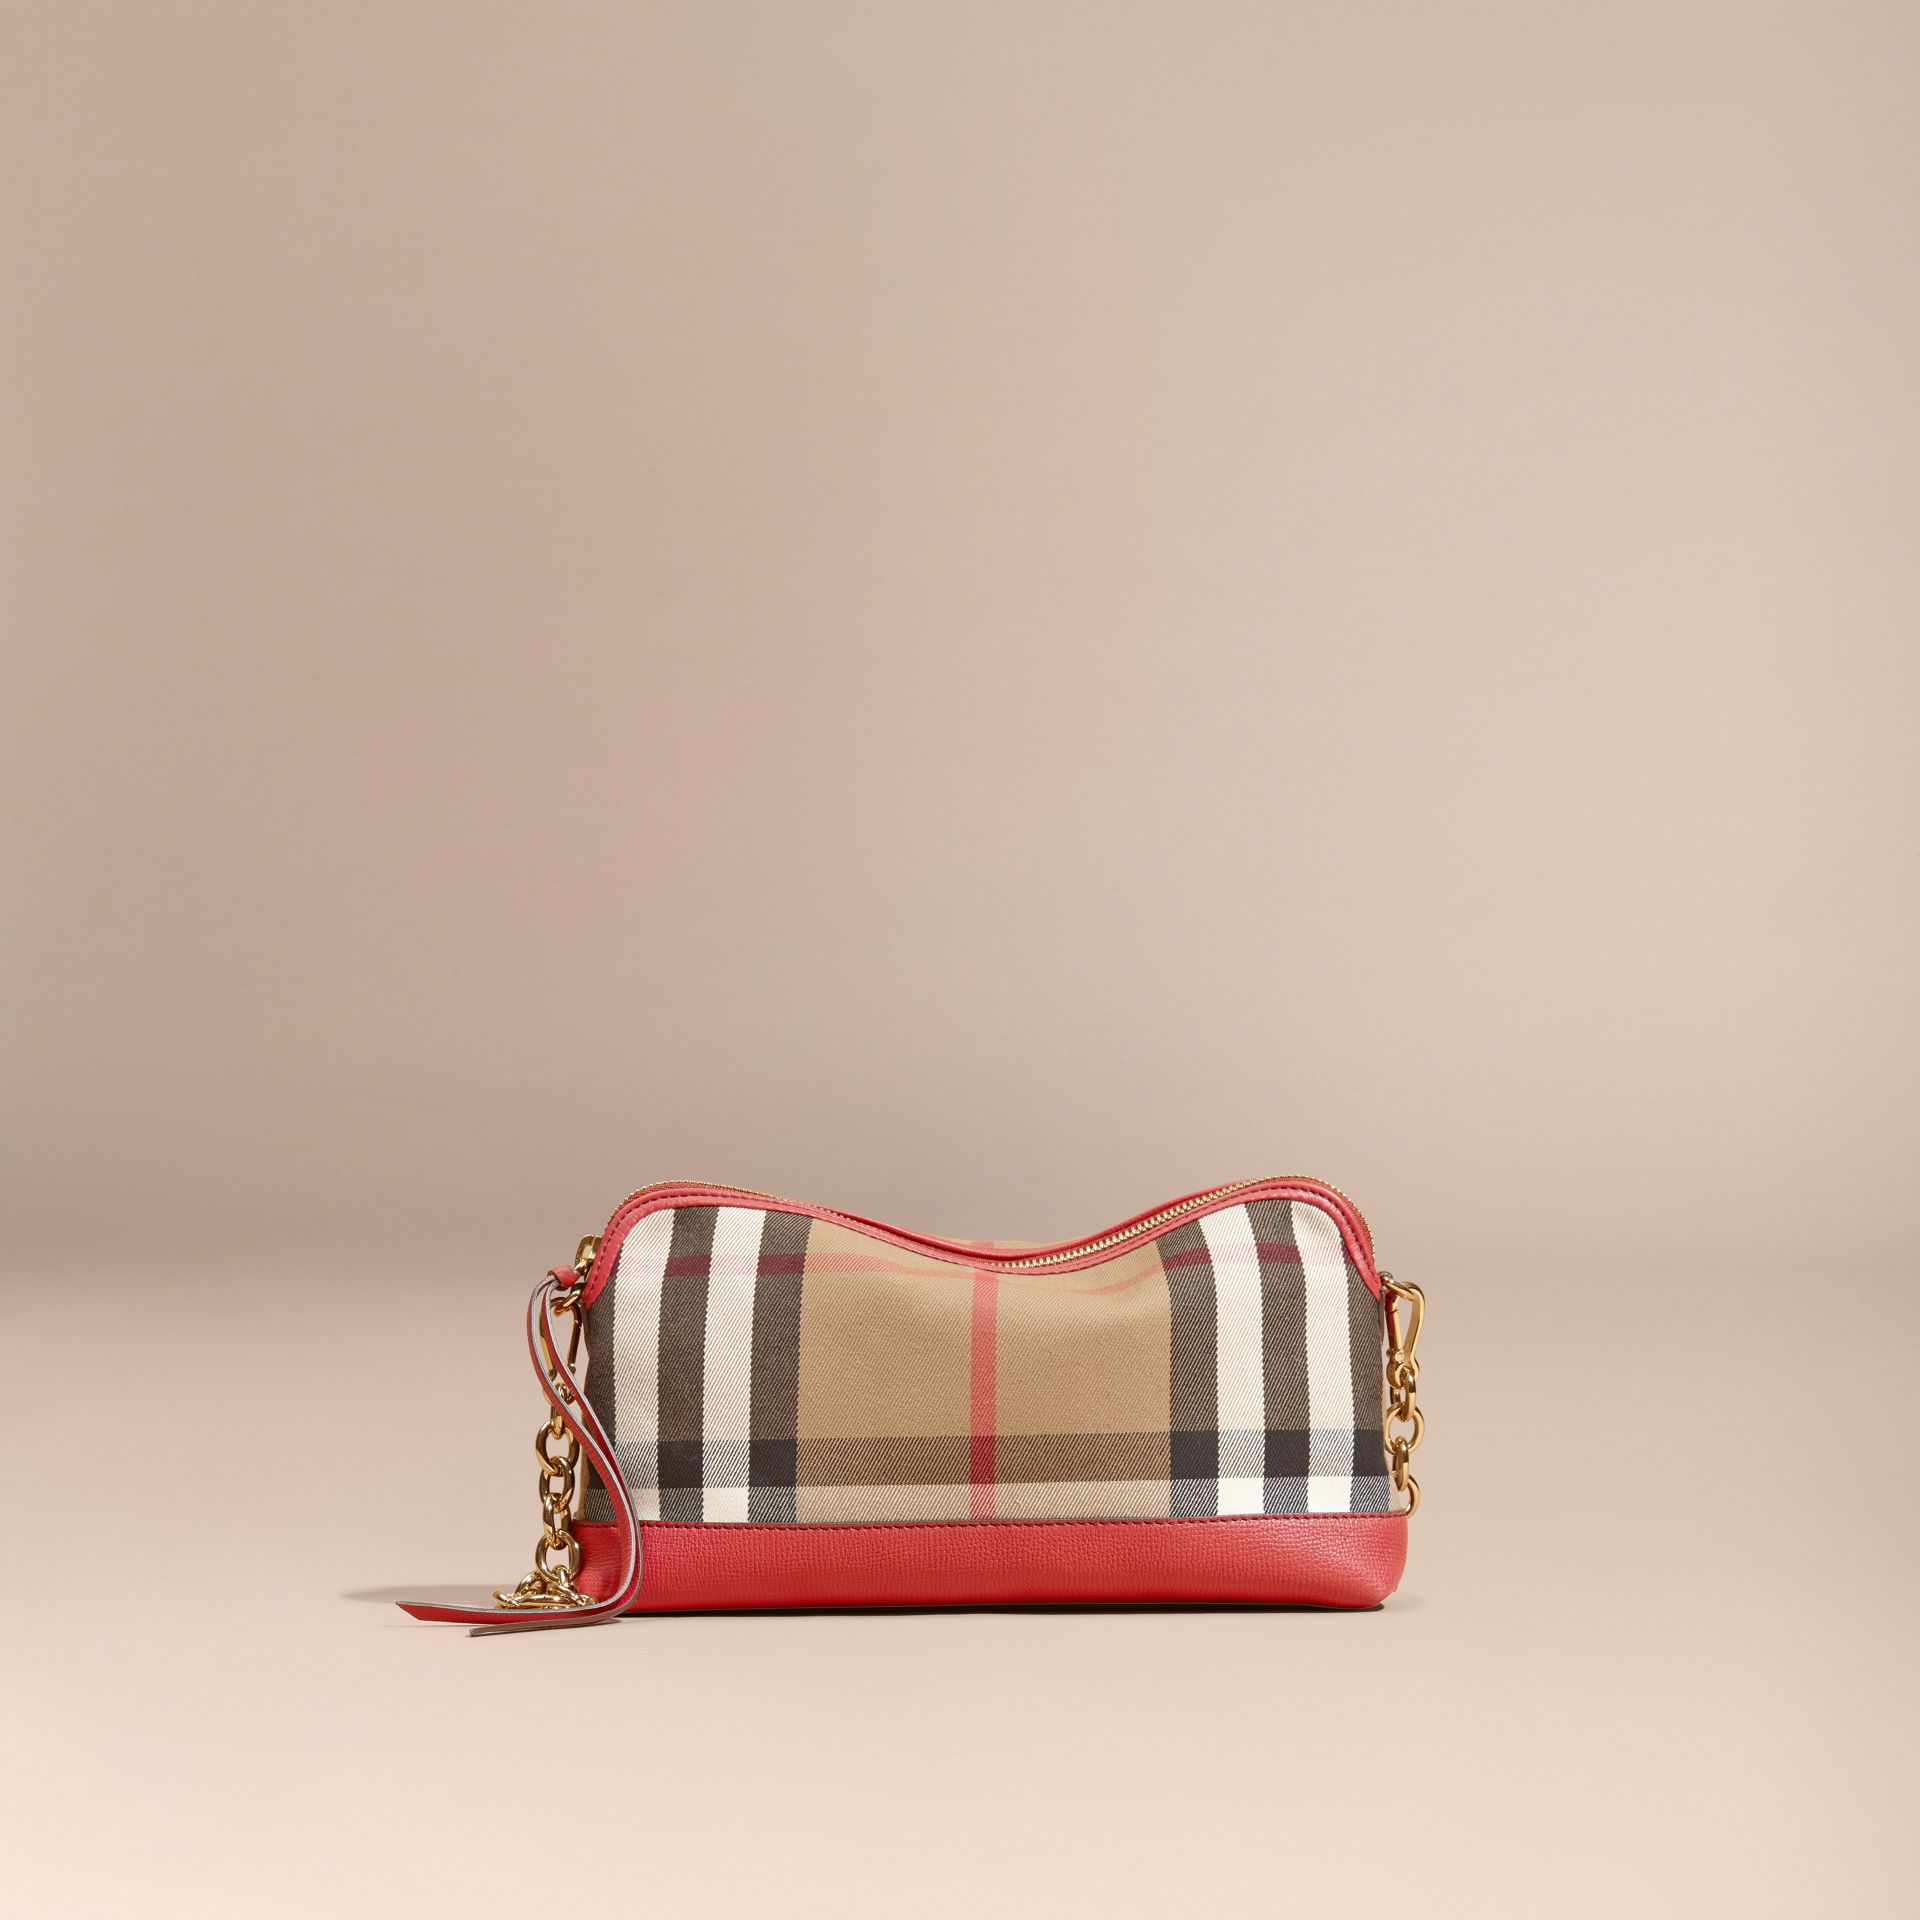 House Check and Leather Clutch Bag in Russet Red - Women | Burberry - gallery image 9